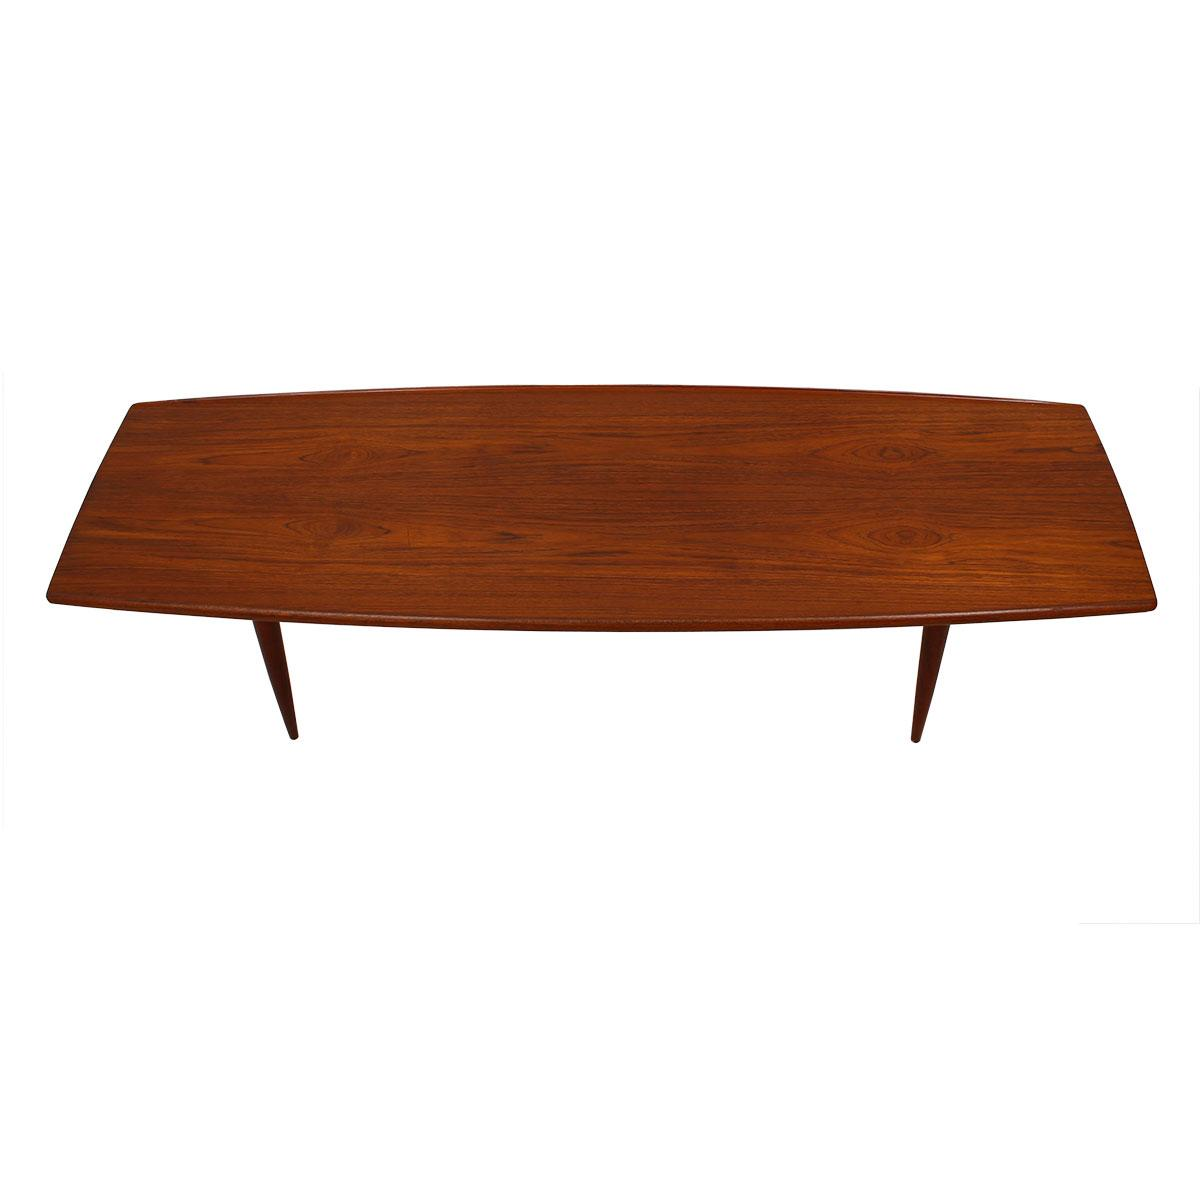 Teak Oil Coffee Table: Long Danish Modern Teak Surfboard Coffee Table